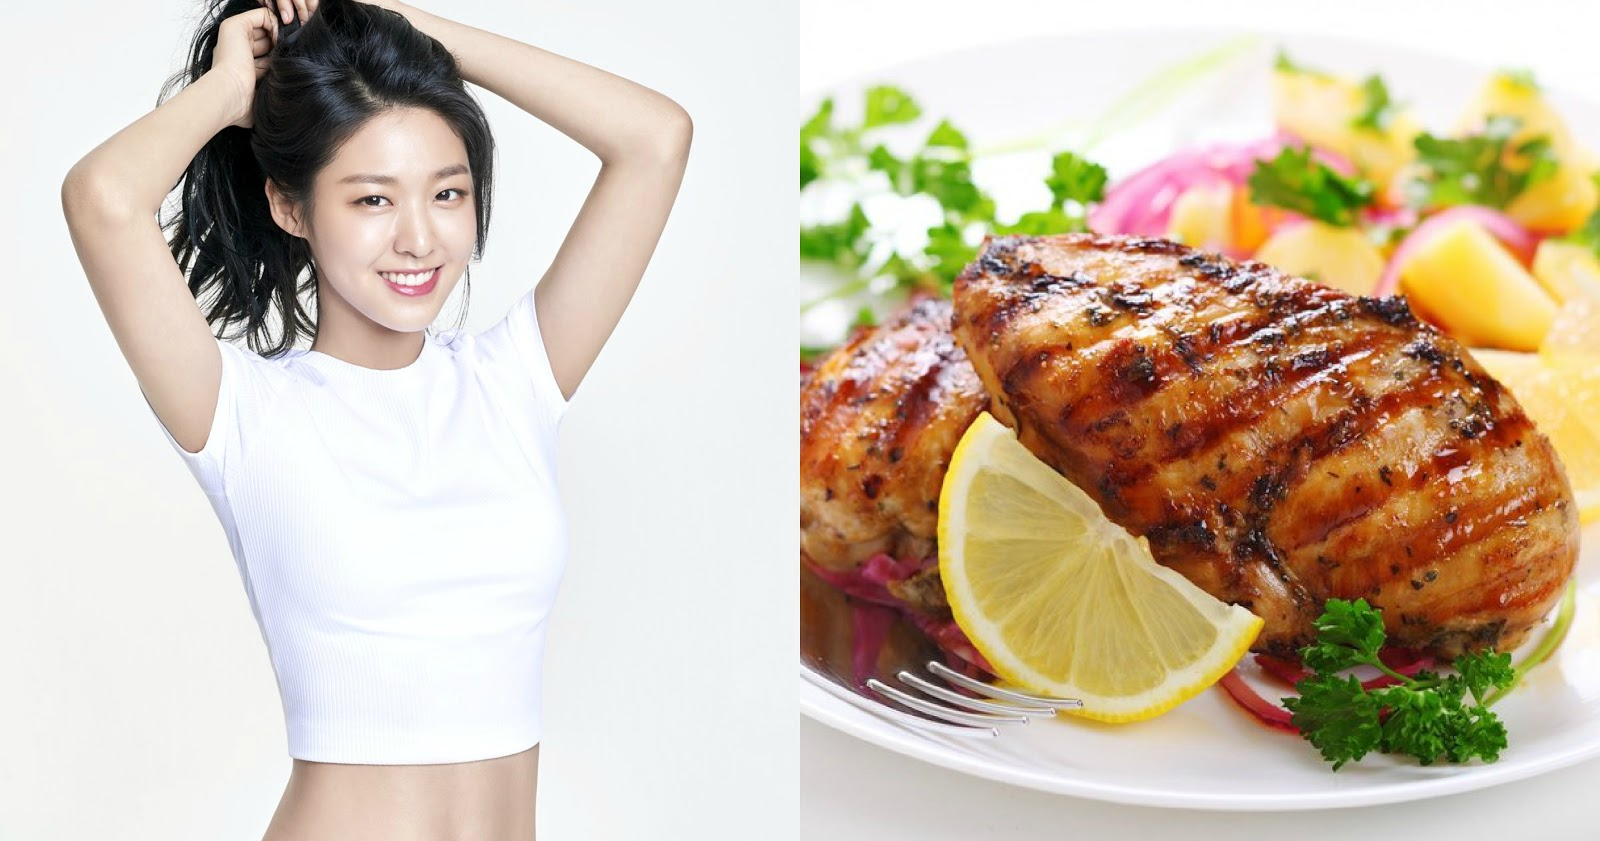 SISTAR's Dasom reveals her diet meal plan